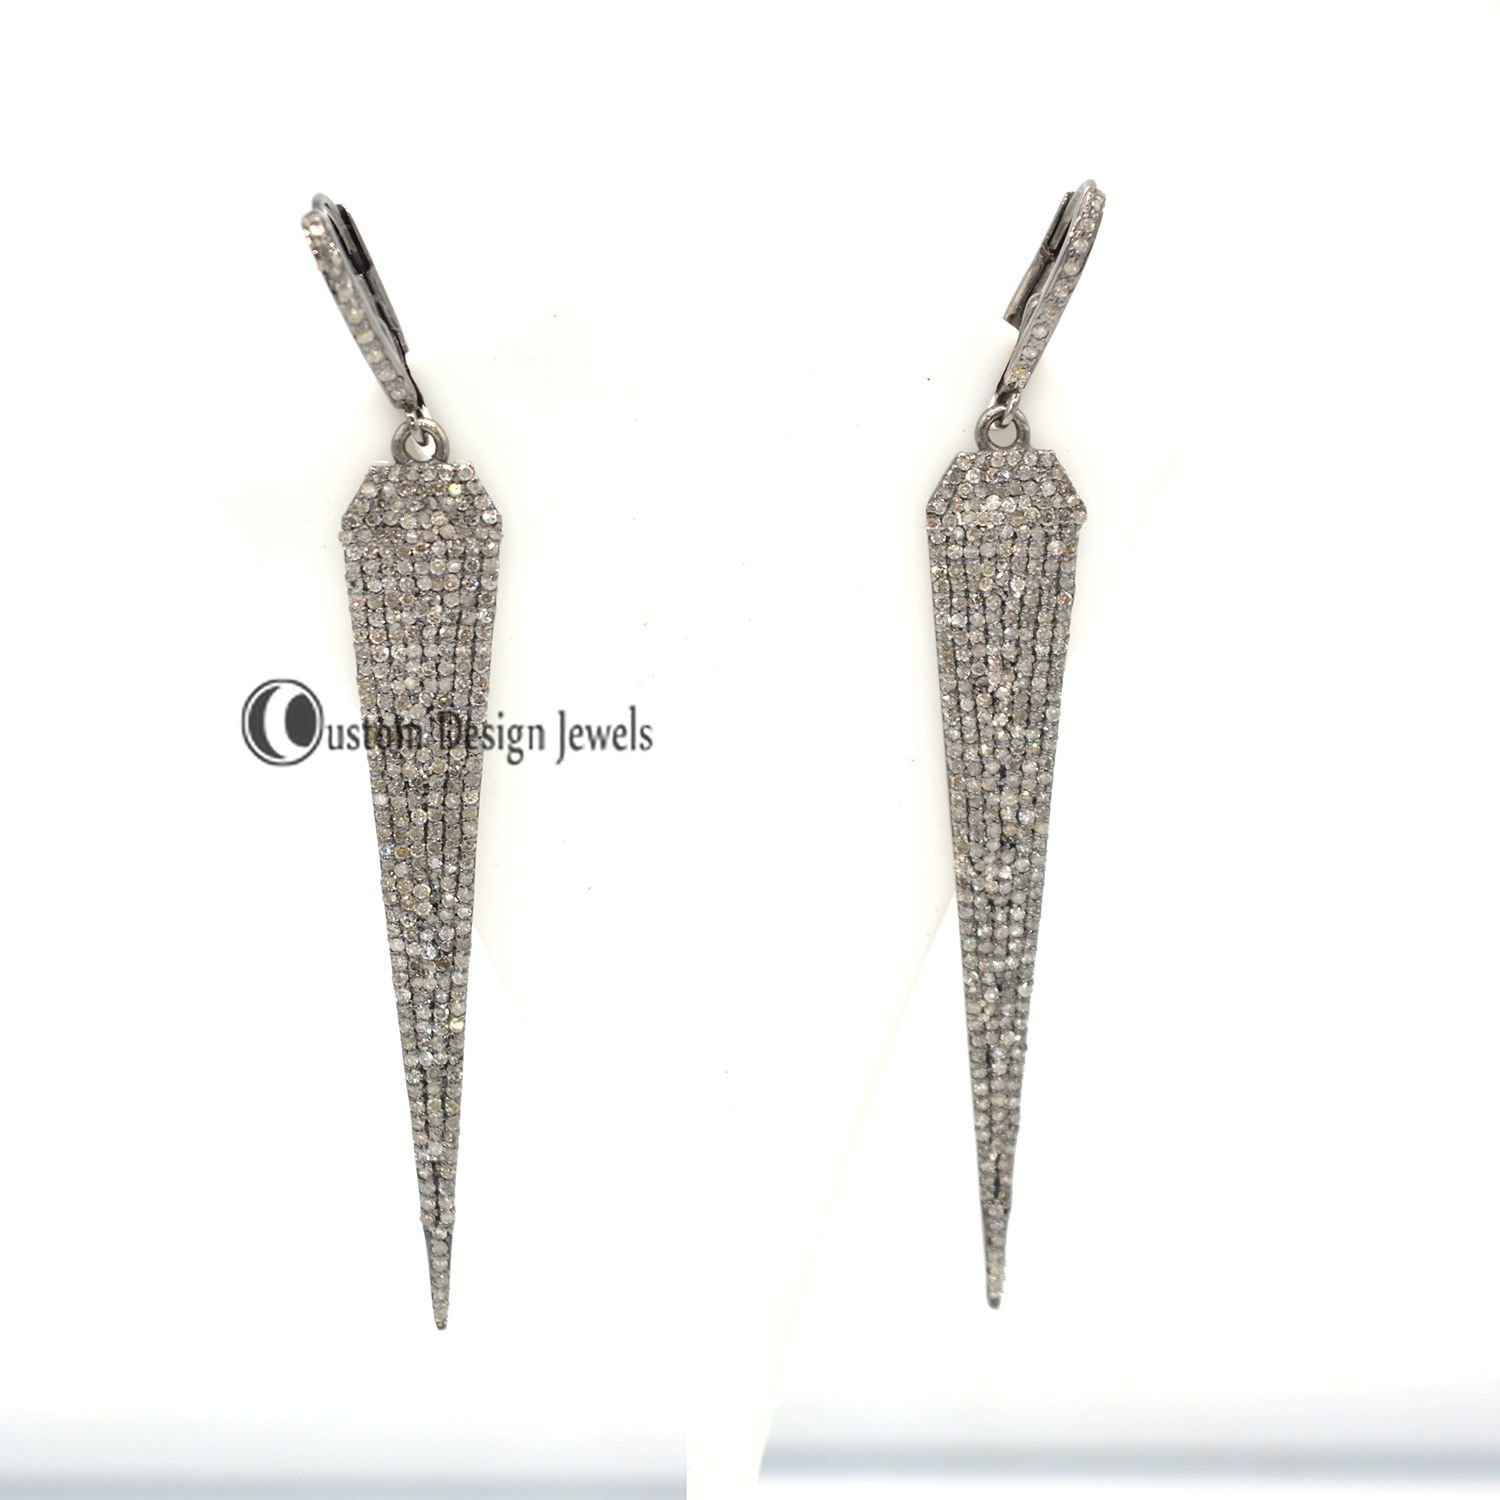 Pave Diamond Spike Earrings, Pave Diamond Earring, Designer pave diamond jewelry